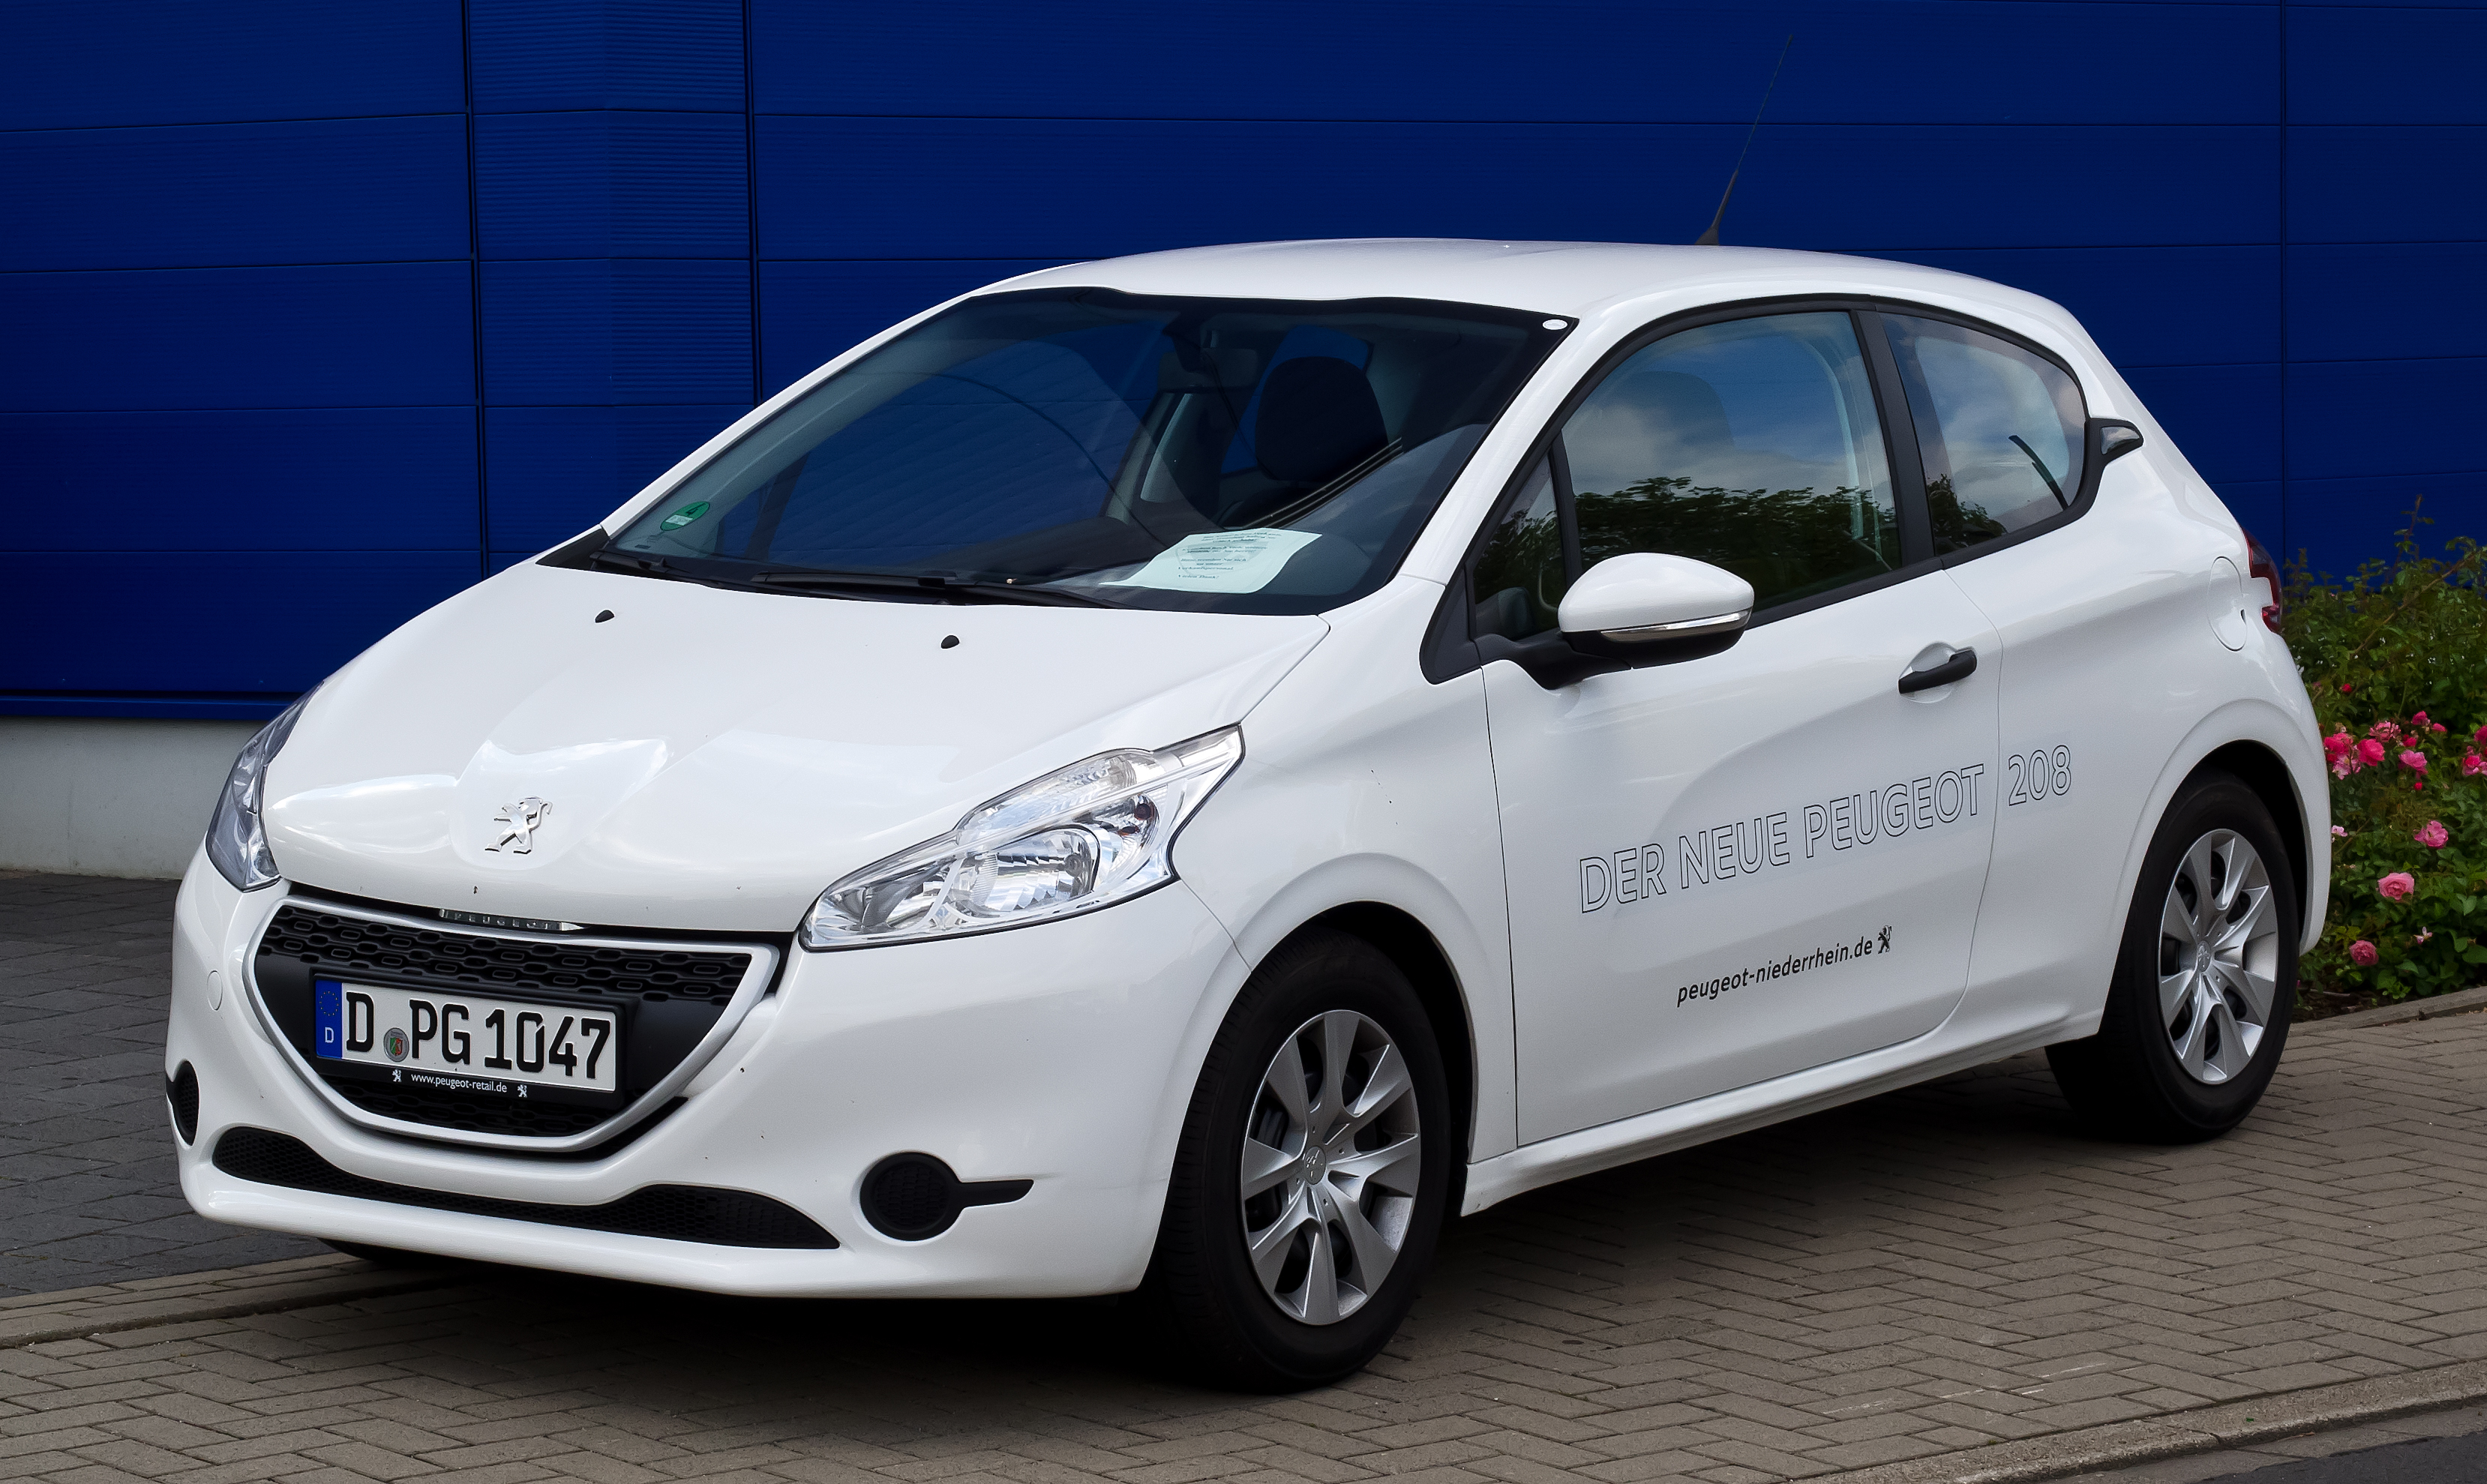 Pictures of peugeot #8